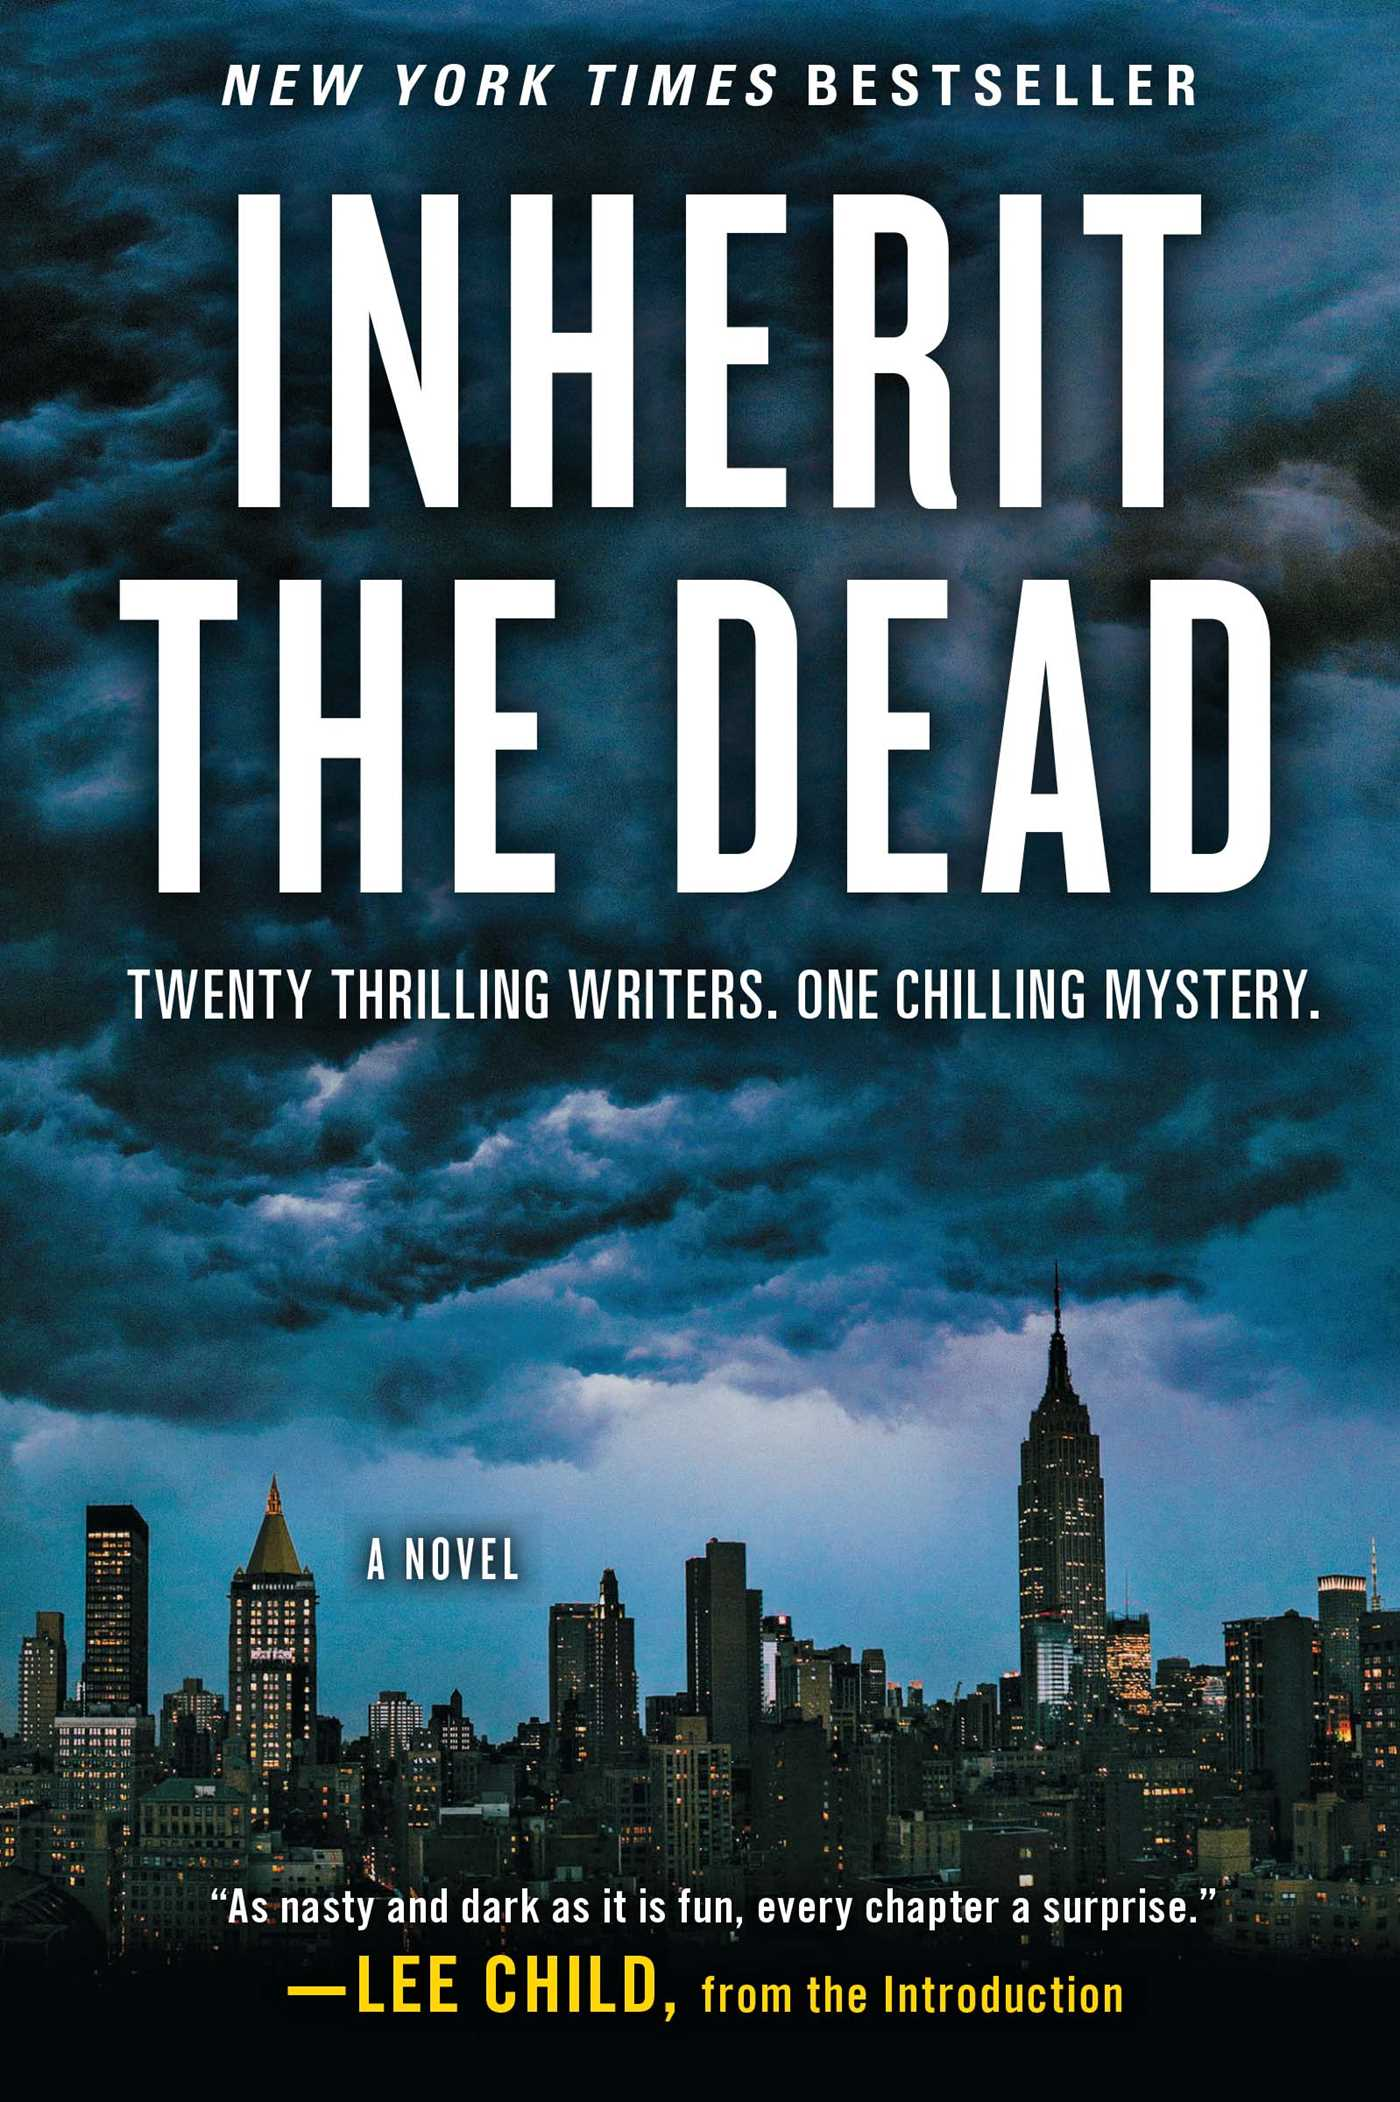 Inherit the dead 9781451684773 hr